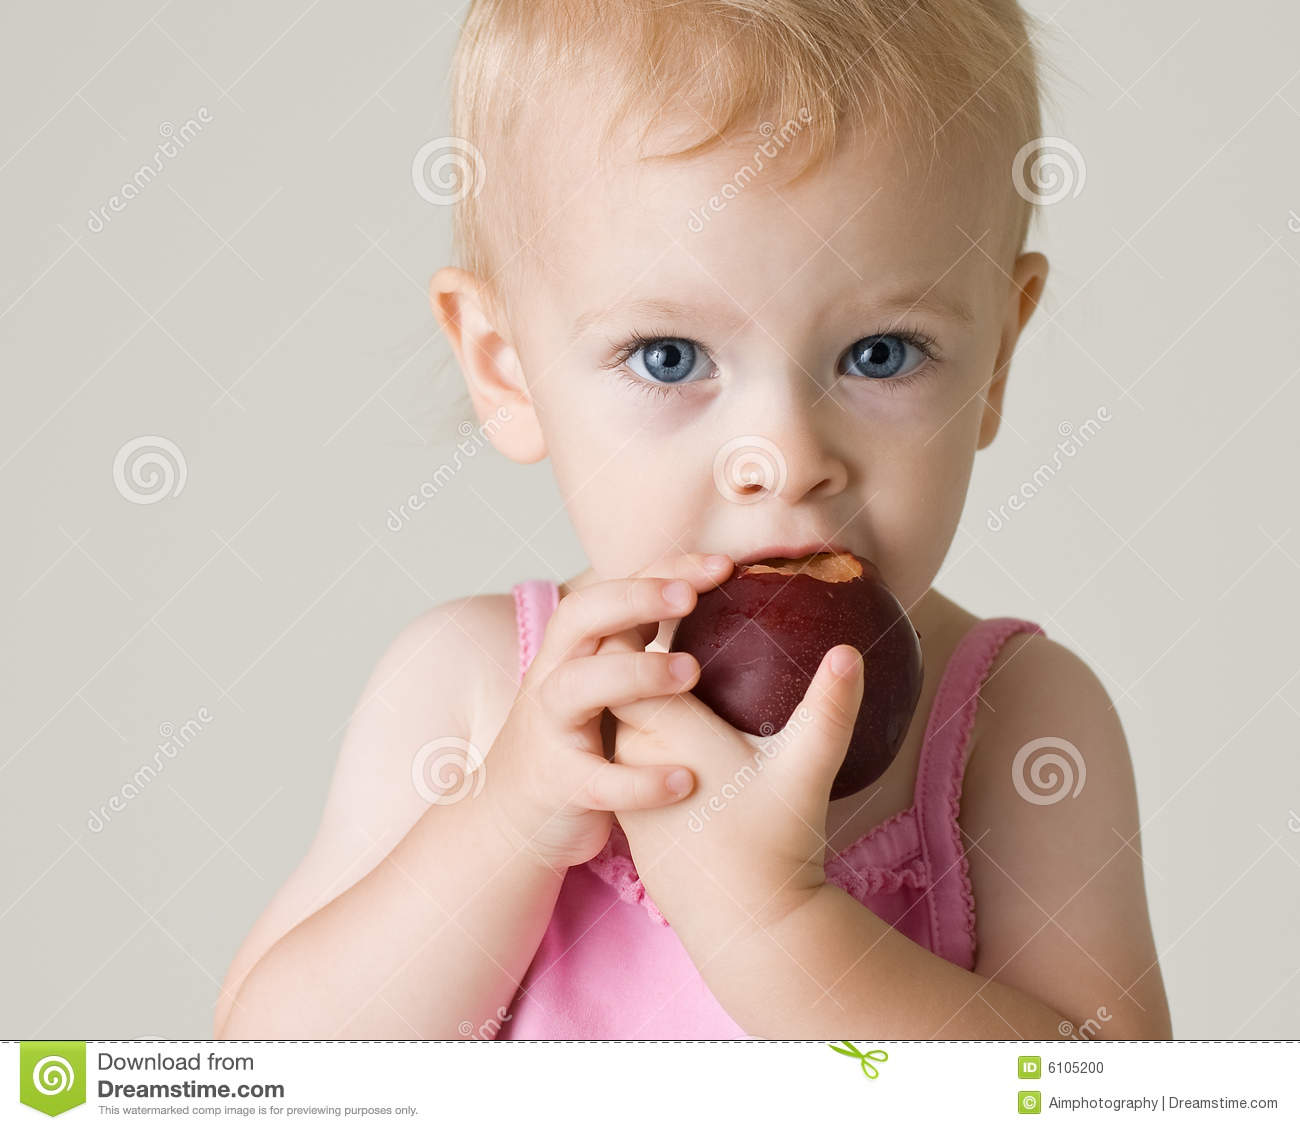 Color portrait of a cute baby girl enjoying eating a fresh plum